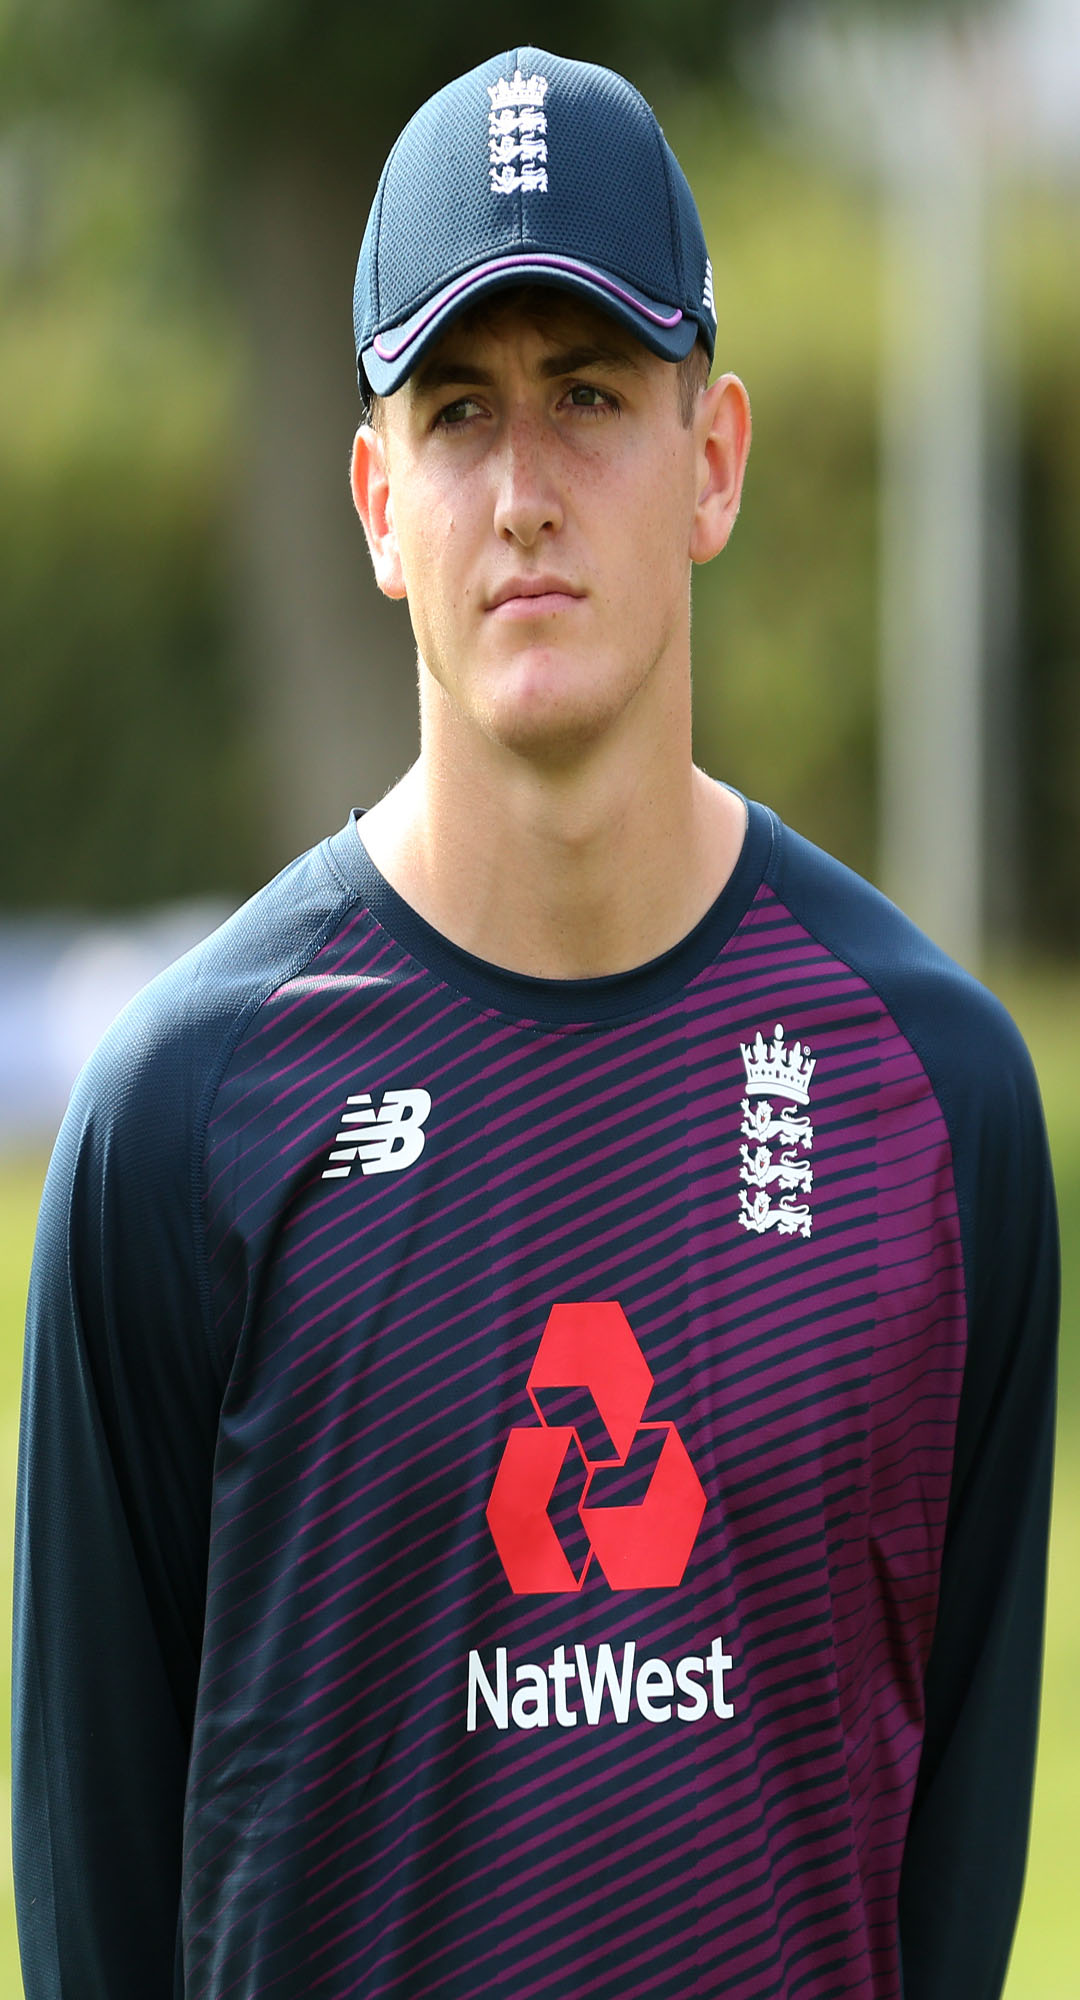 Phoenix Management Group's Nick Kimber during the England Under 19's Nets training session at National Cricket Performance Centre, Loughborough, England (Photo by Paul Harding/Getty Images).